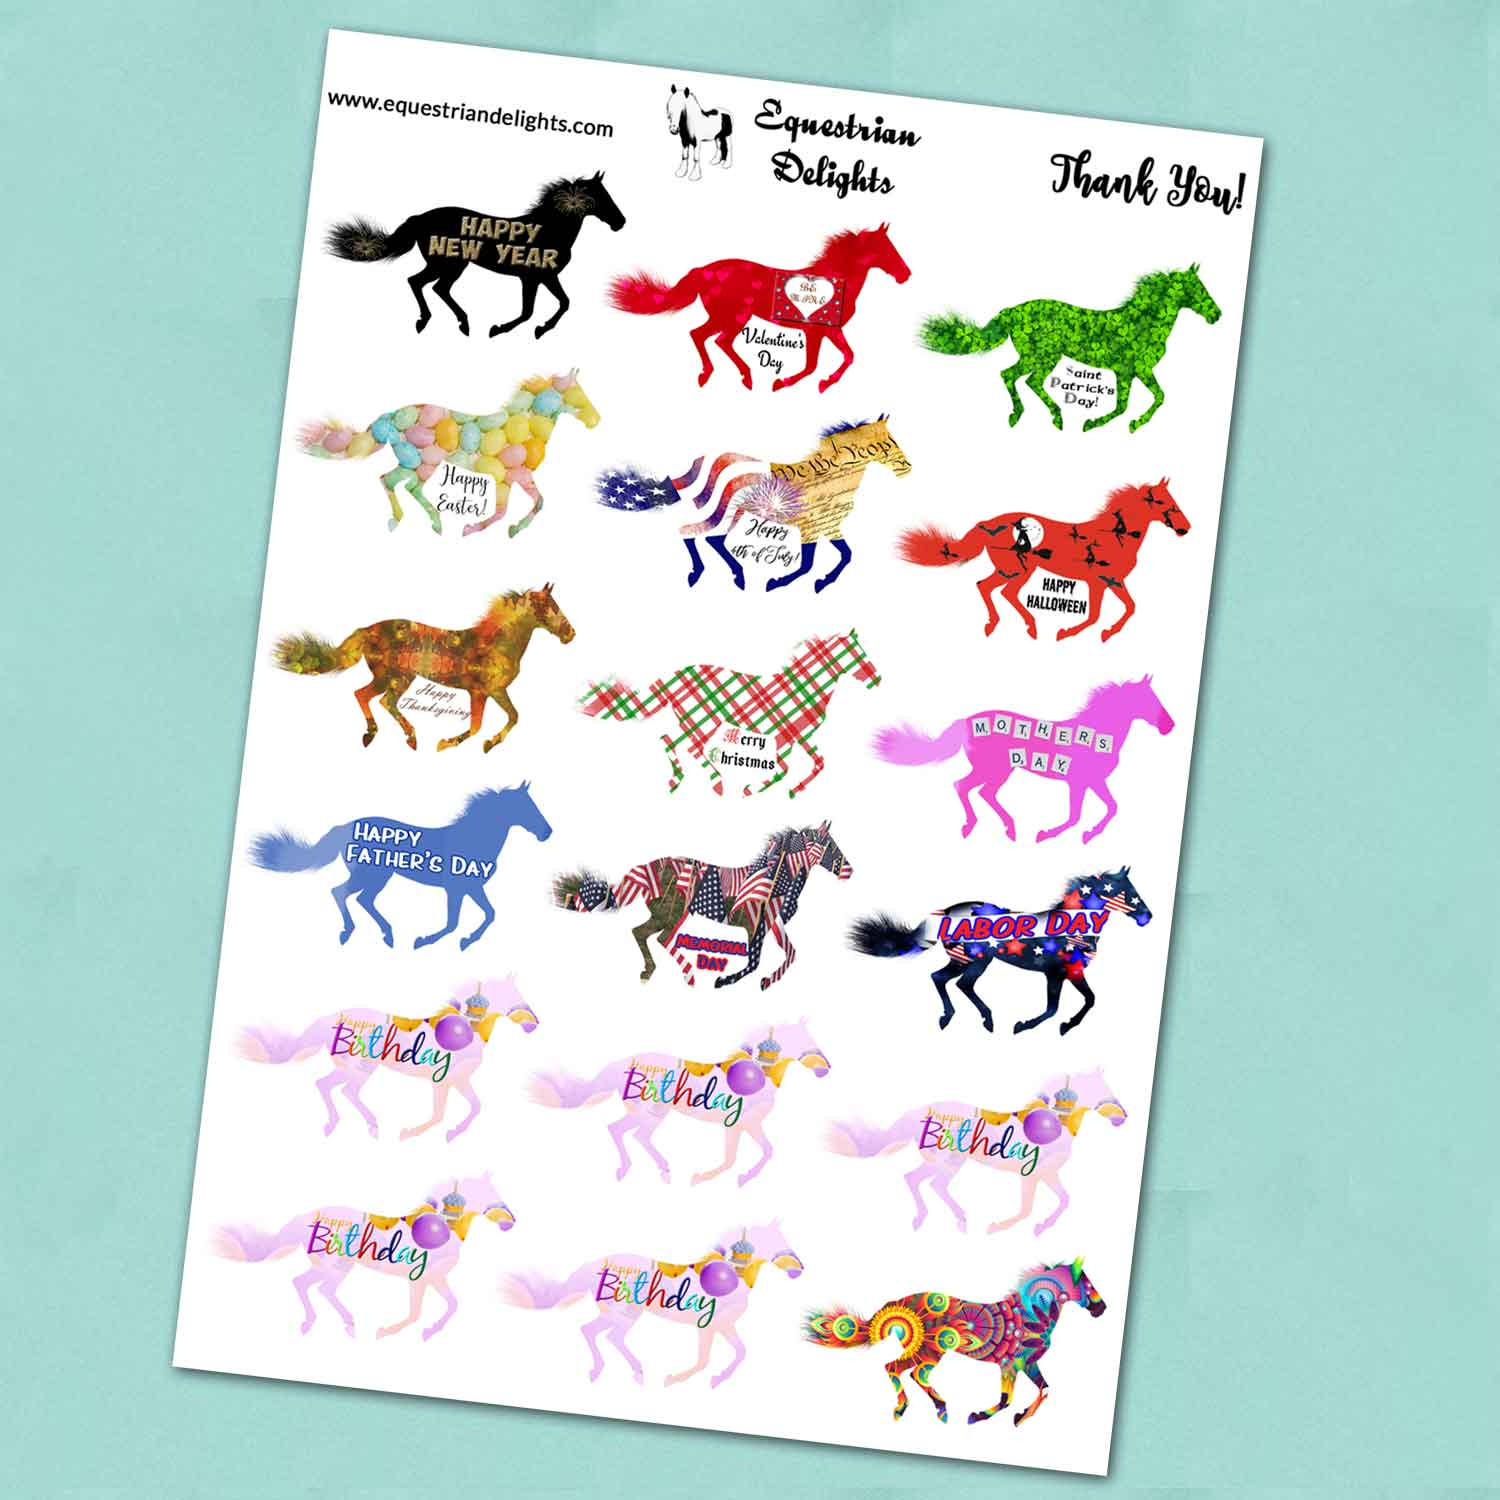 Horse Stickers for Holidays, Birthdays, Planner Stickers for Equestrians